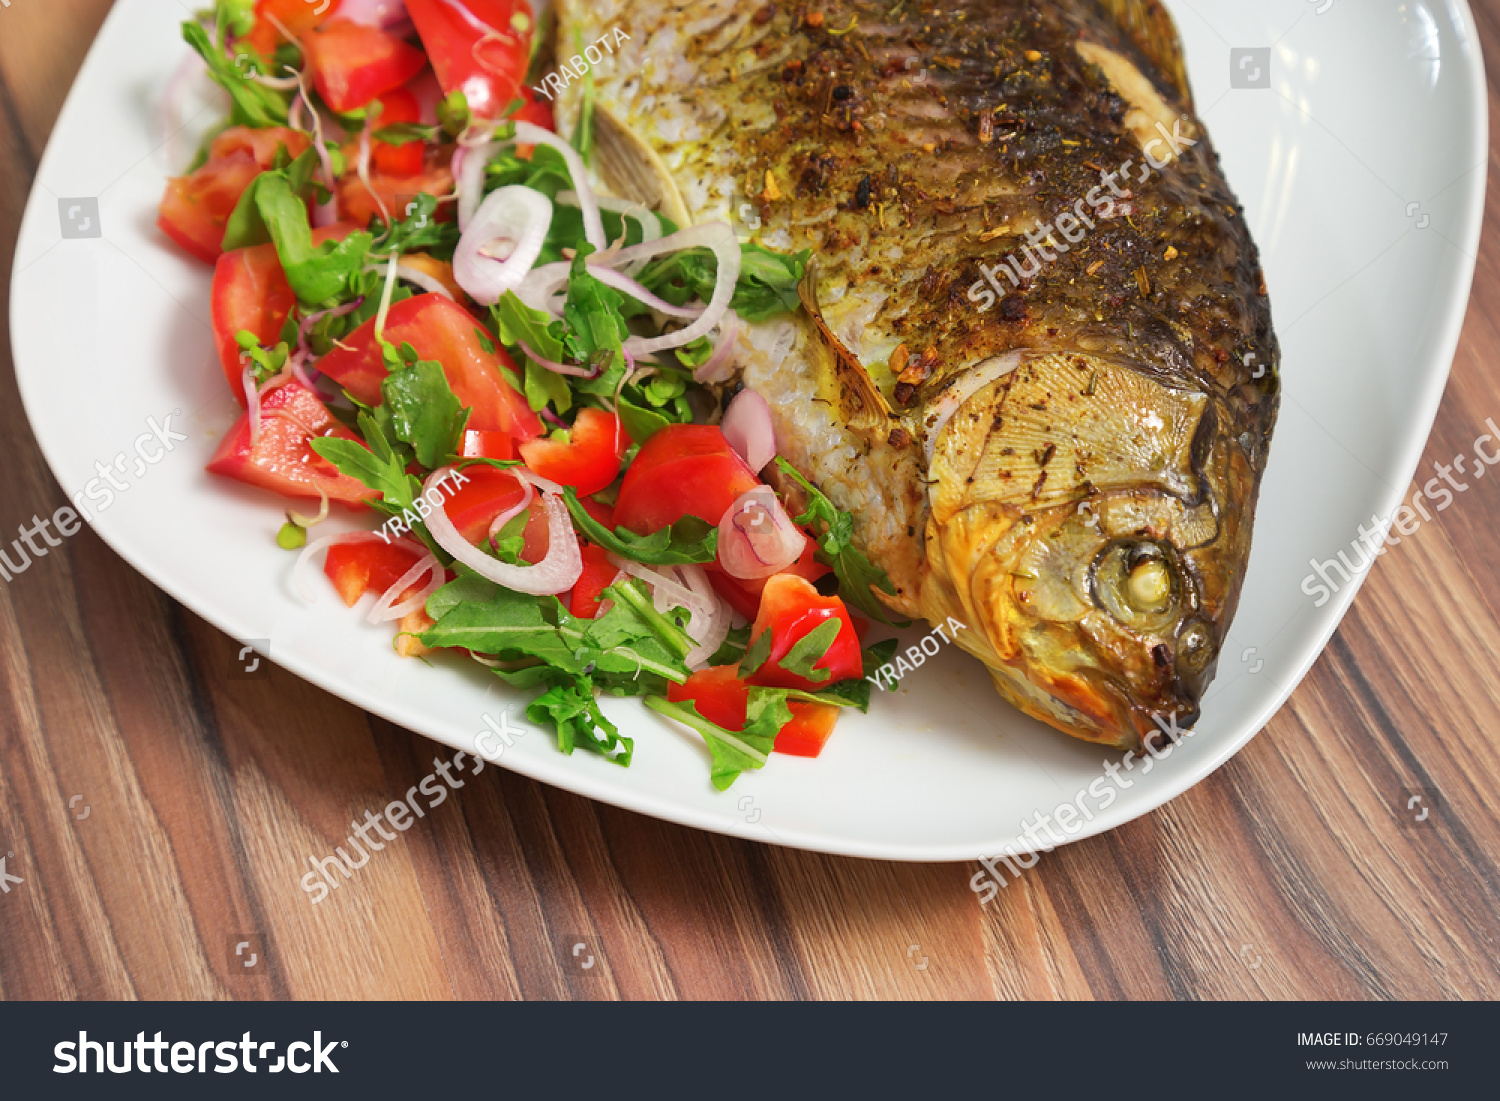 How to cook a crucian Carp roasted, baked, in sour cream - recipes, photos 35